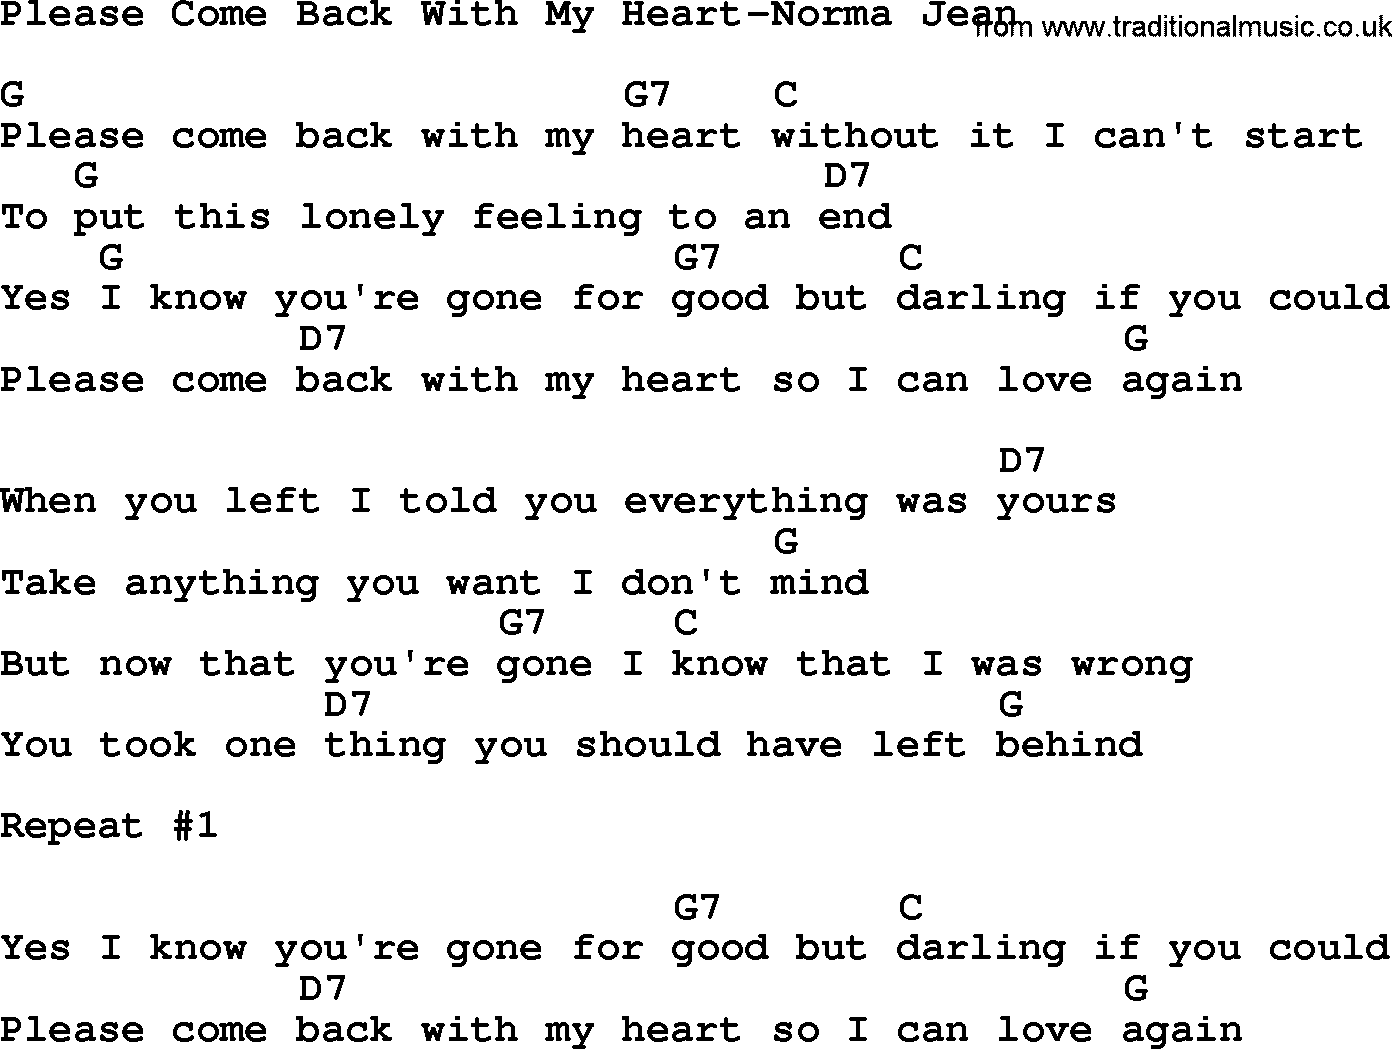 Download please come back with my heart norma jean lyrics and chords